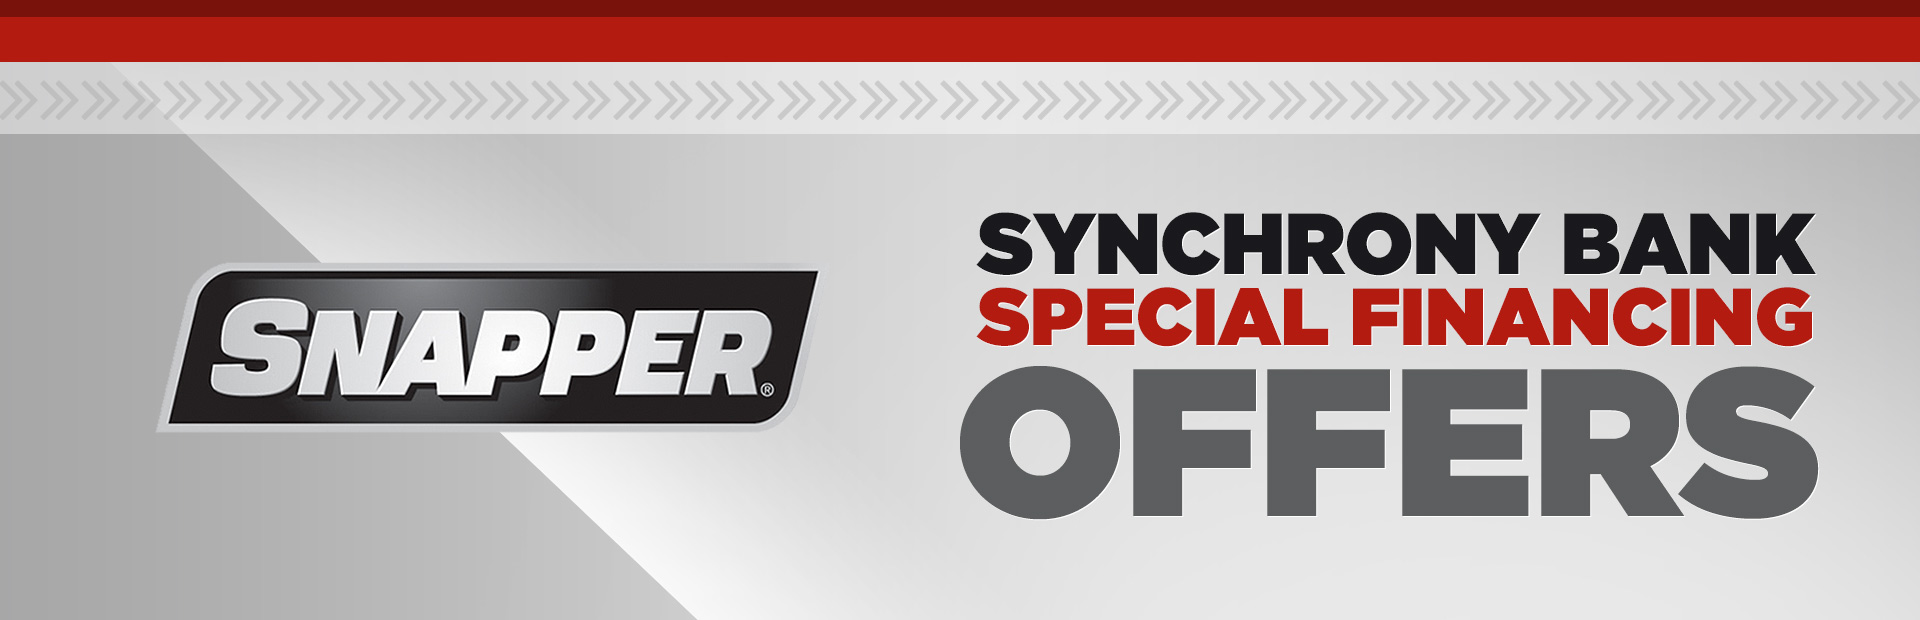 snapper mowers logo. snapper: synchrony bank special financing offers snapper mowers logo